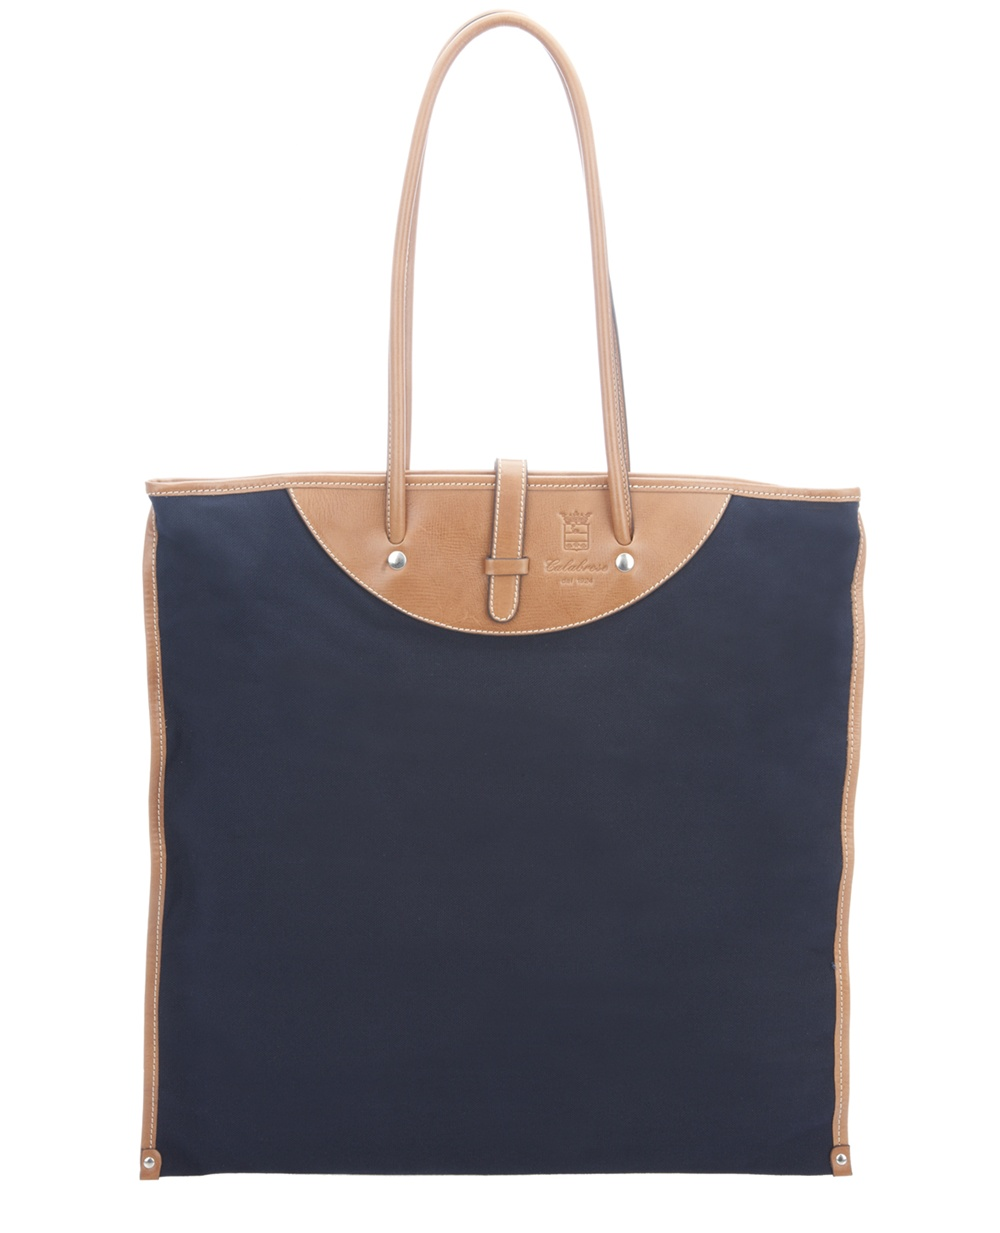 Calabrese Rotolo canvas tote bag – rolls up to pack easy